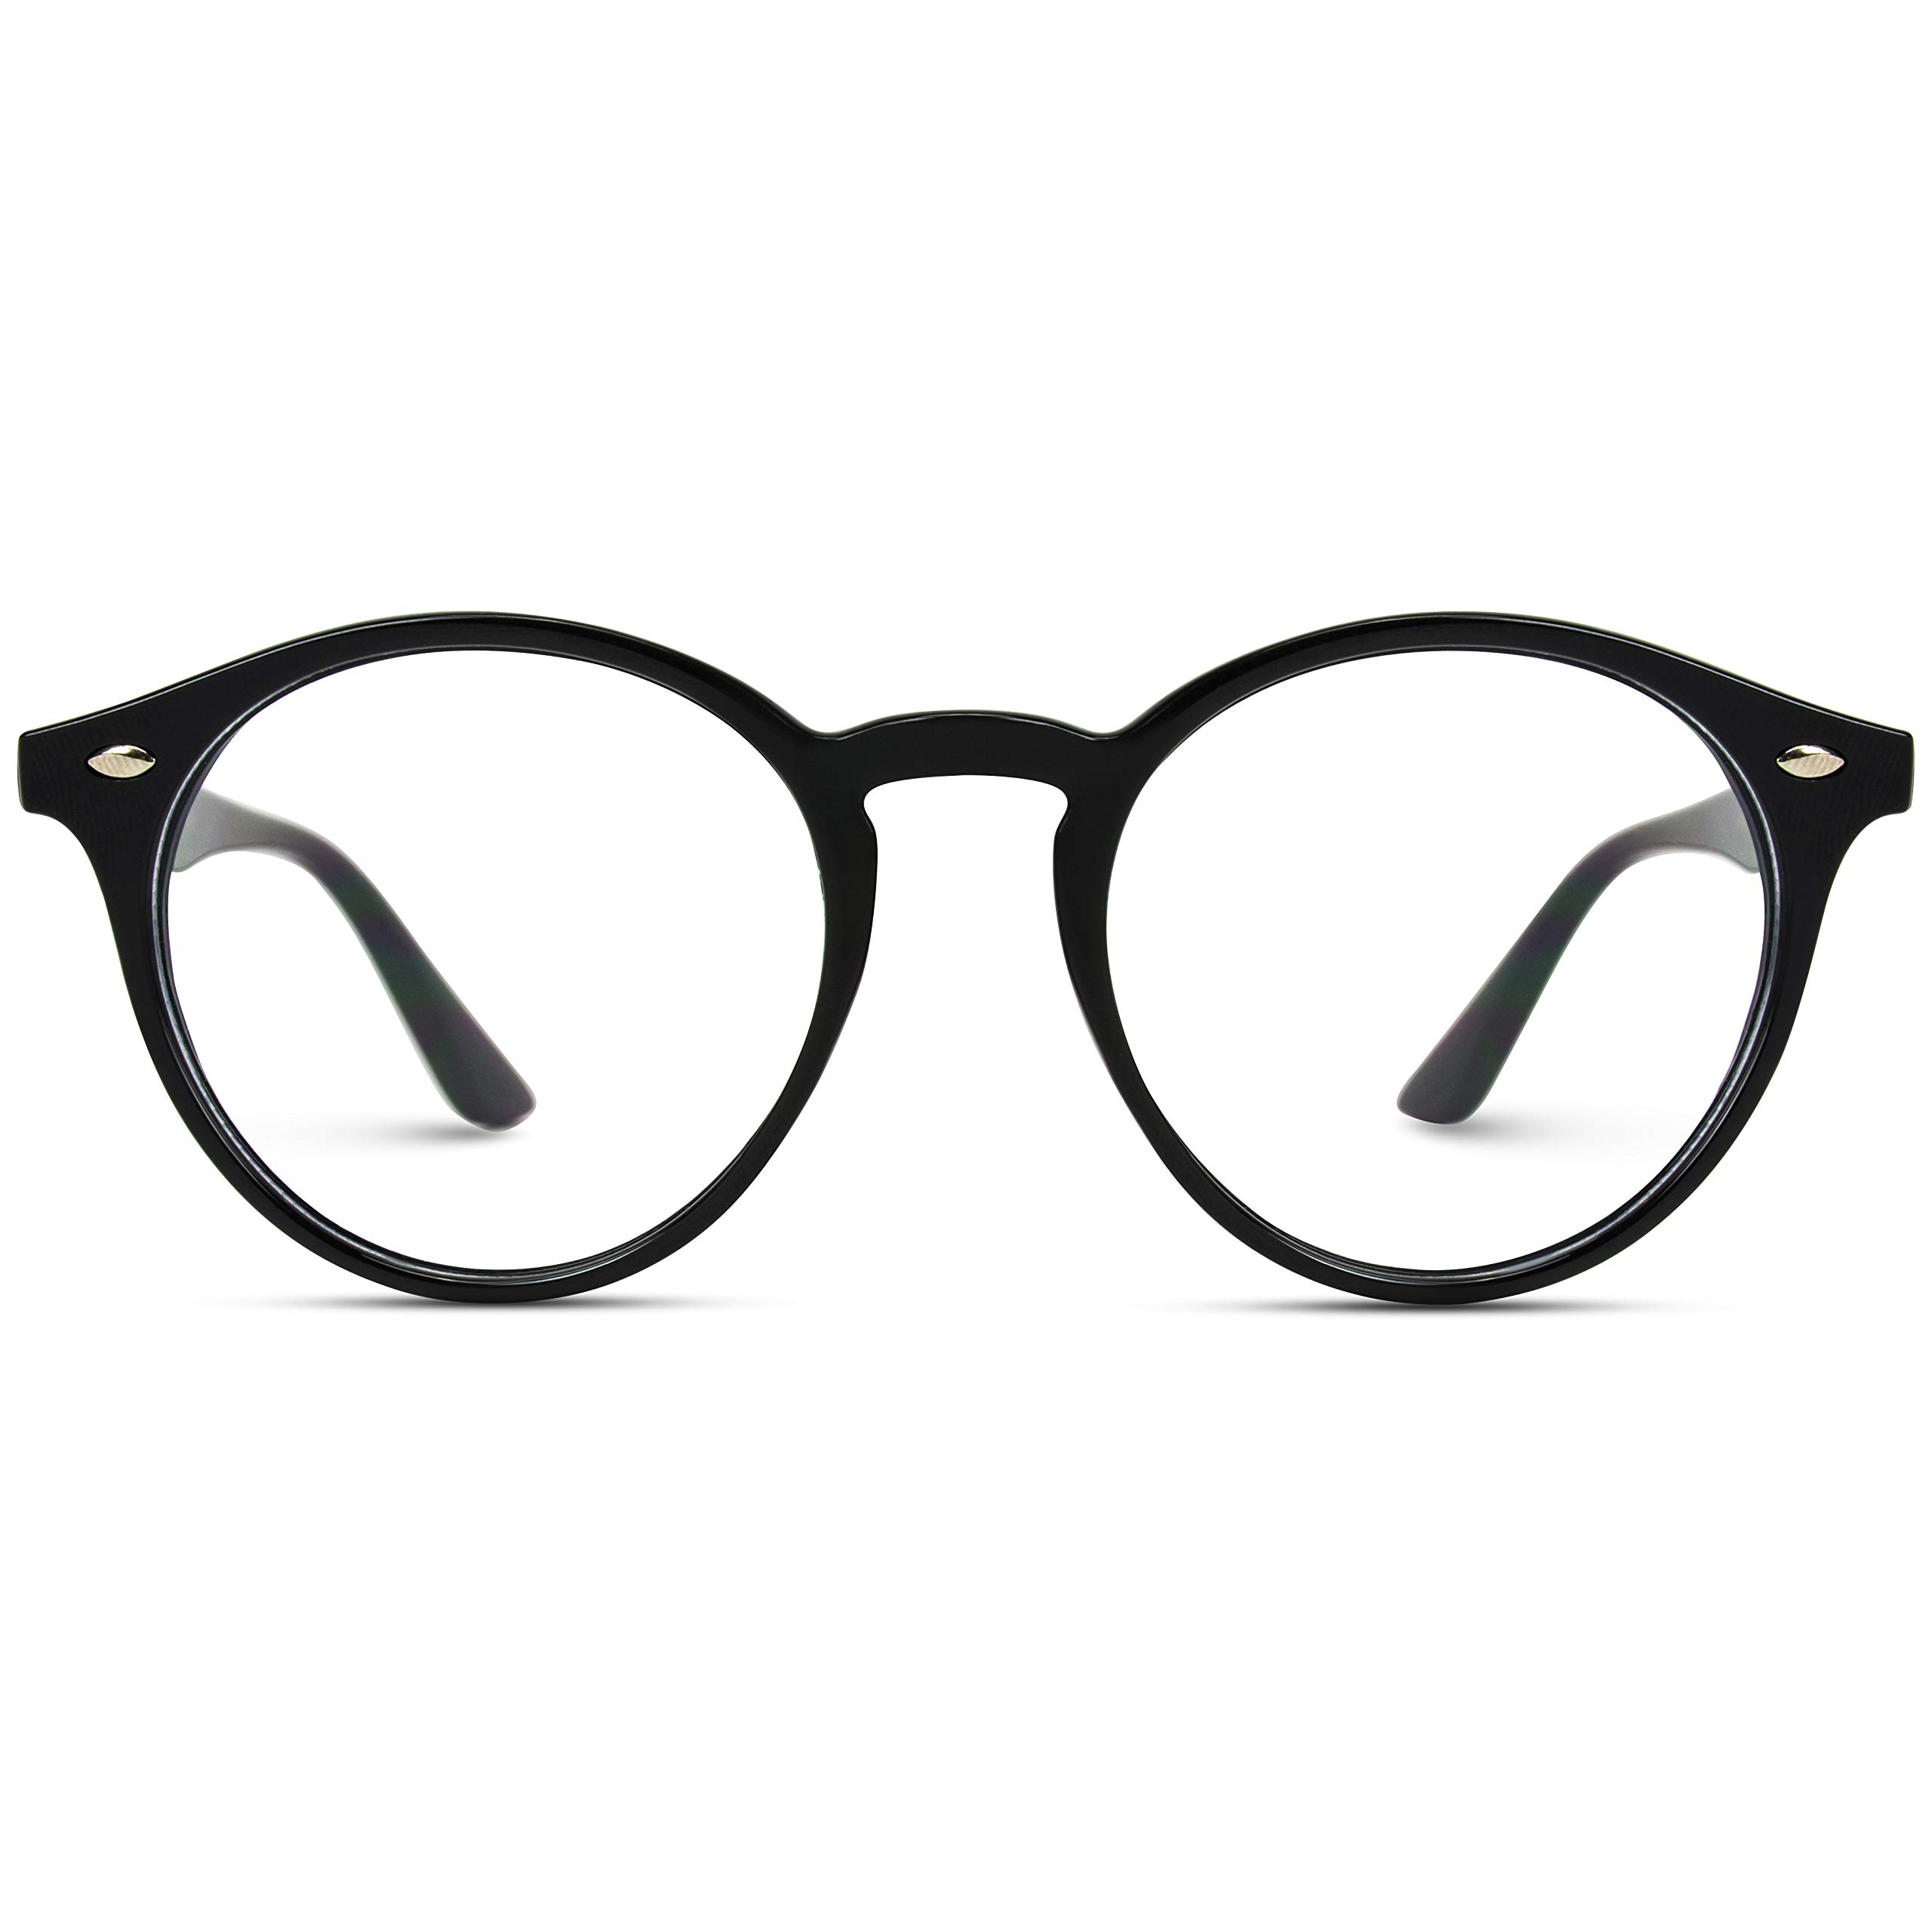 WearMe Pro - Prescription Round Clear Lens Plastic Fashion Glasses by WearMe Pro